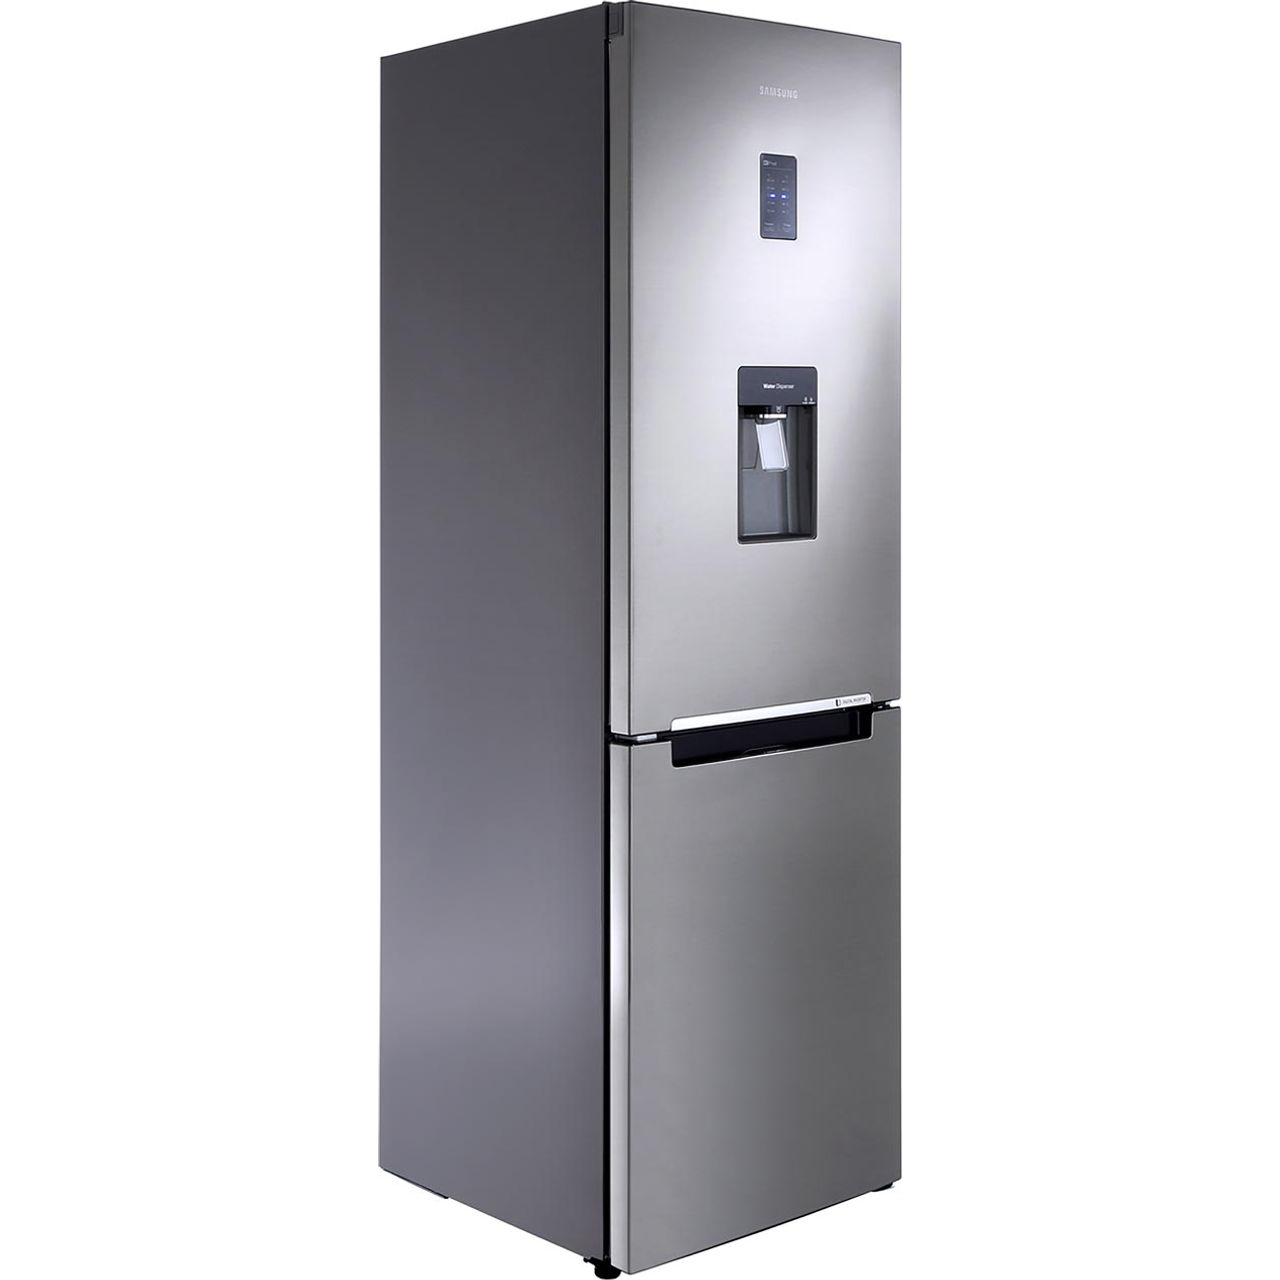 Fridge Freezer Samsung Rb Combi Range Rb31fdrndss 60 40 Frost Free Fridge Freezer Stainless Steel A Rated